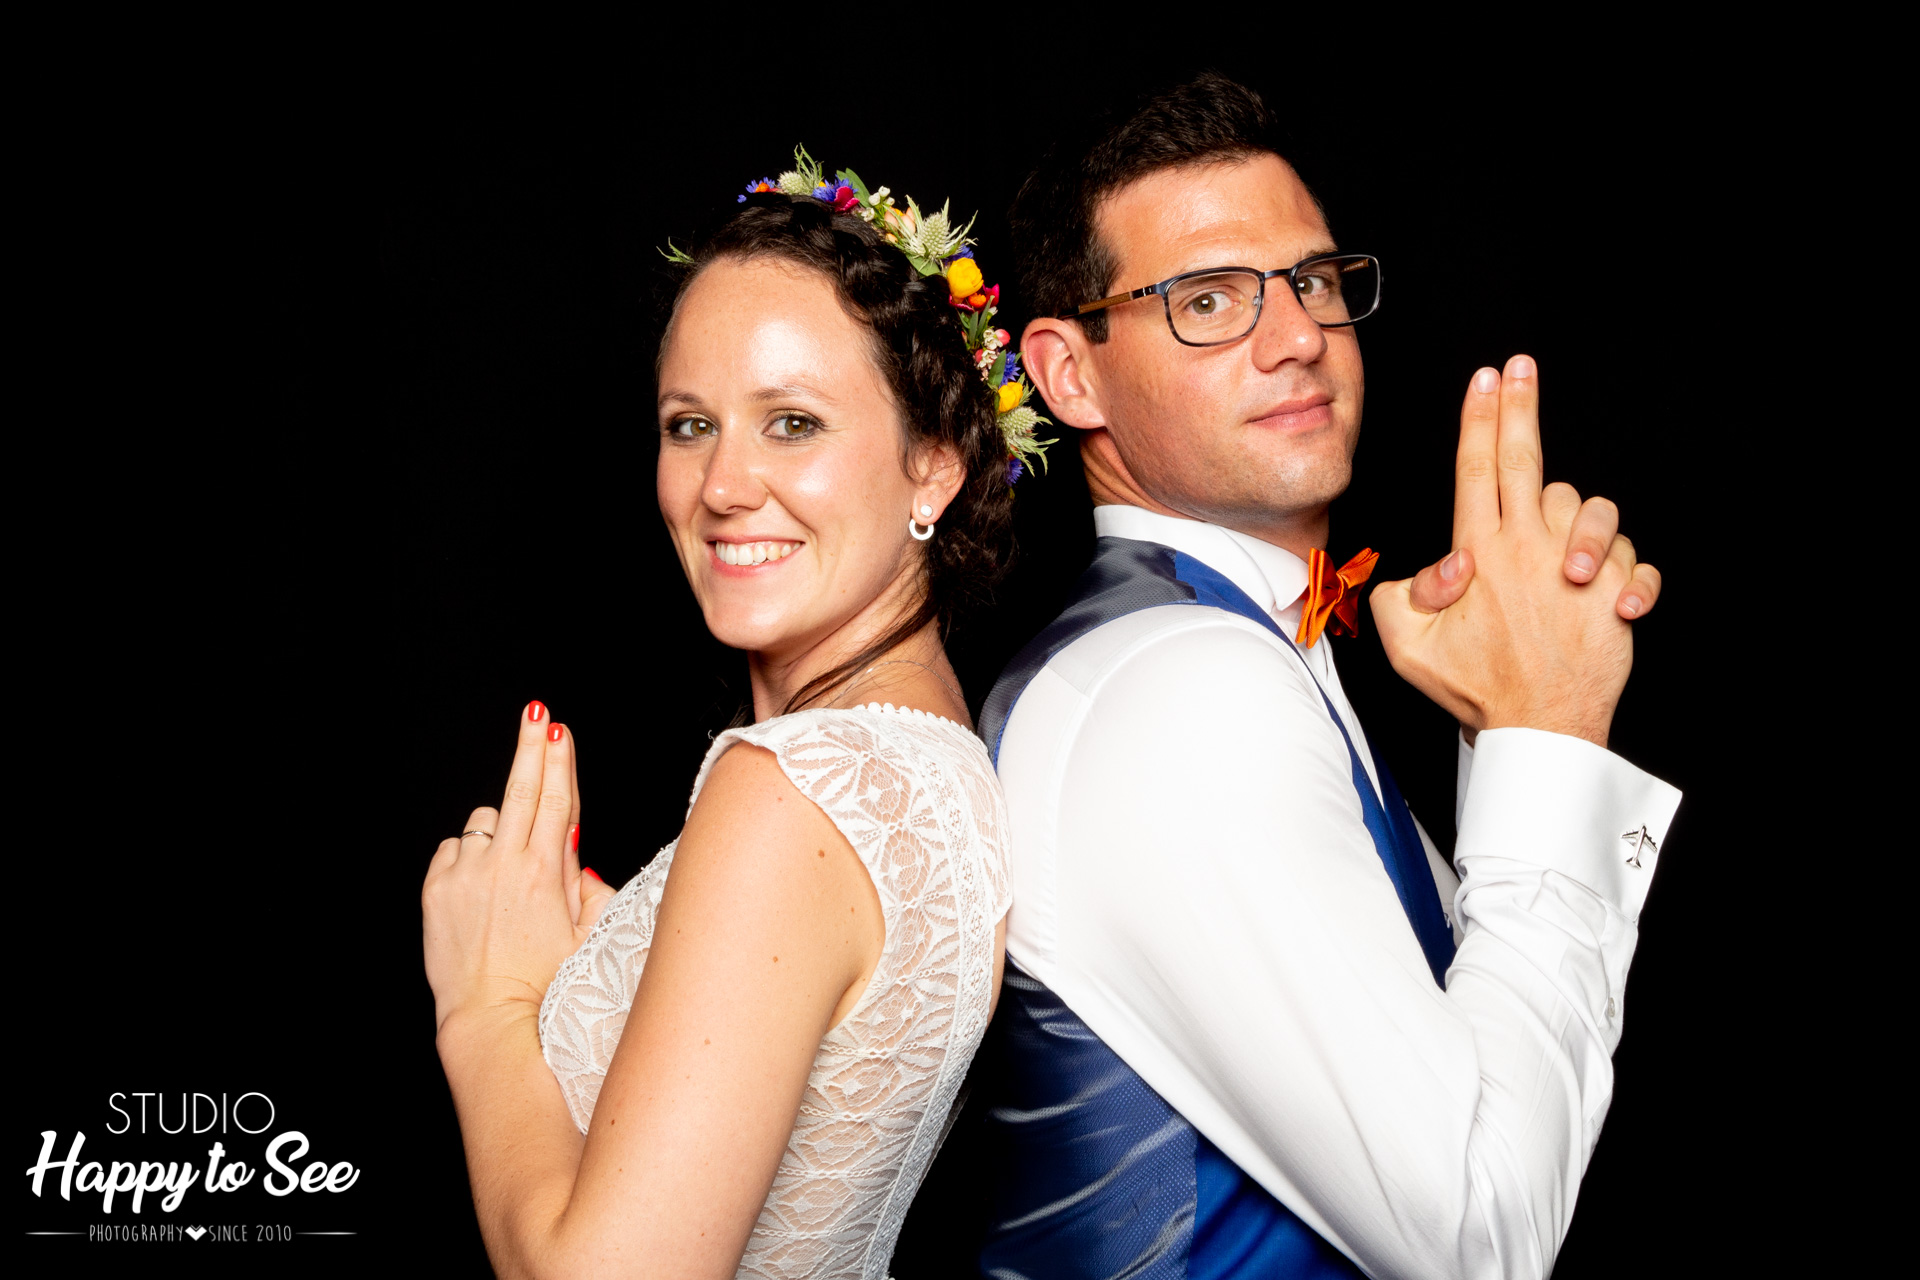 Studio Mobile Happy to See animation photobooth mariage Toulouse